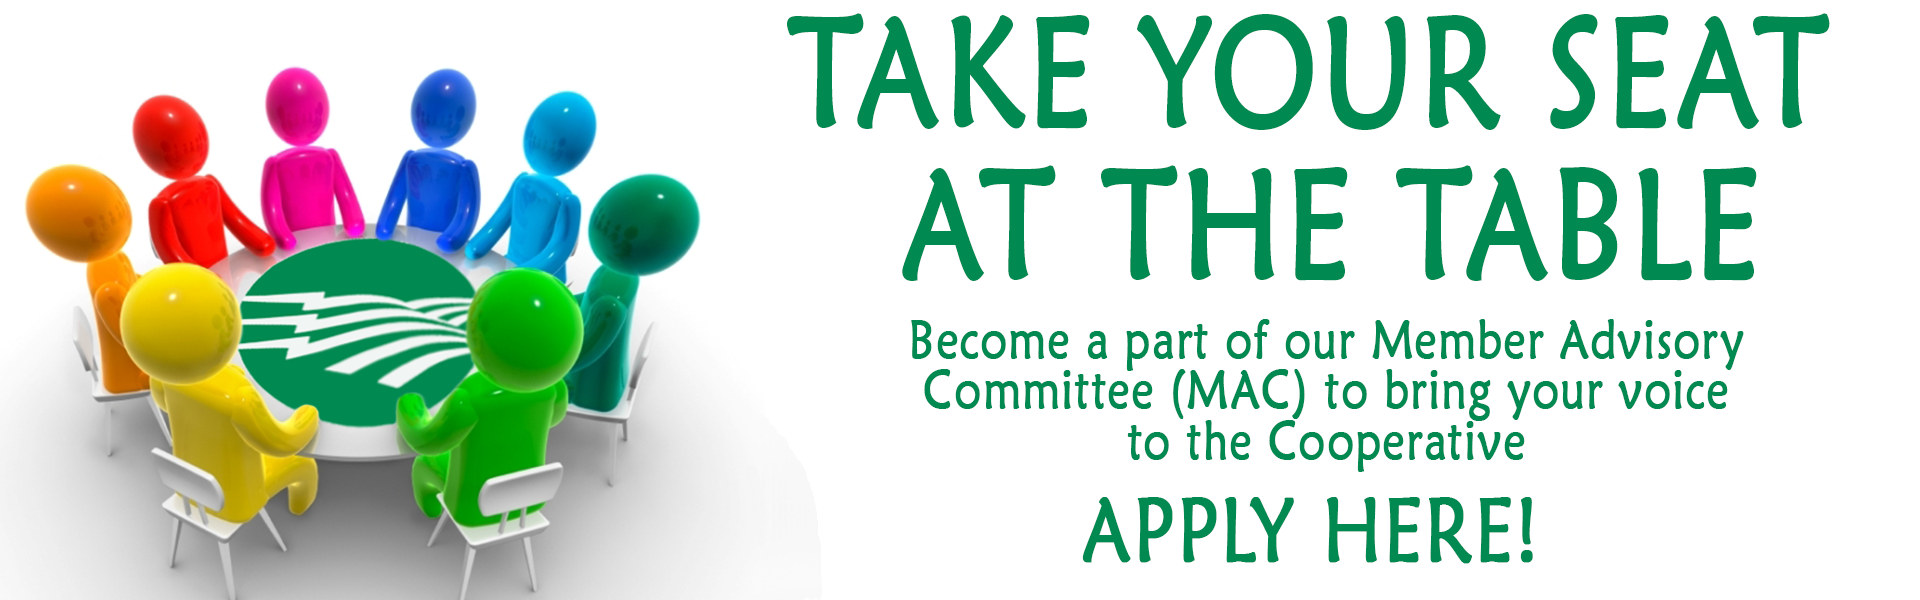 Take your seat at the table -- Apply to our Member Advisory Committee!